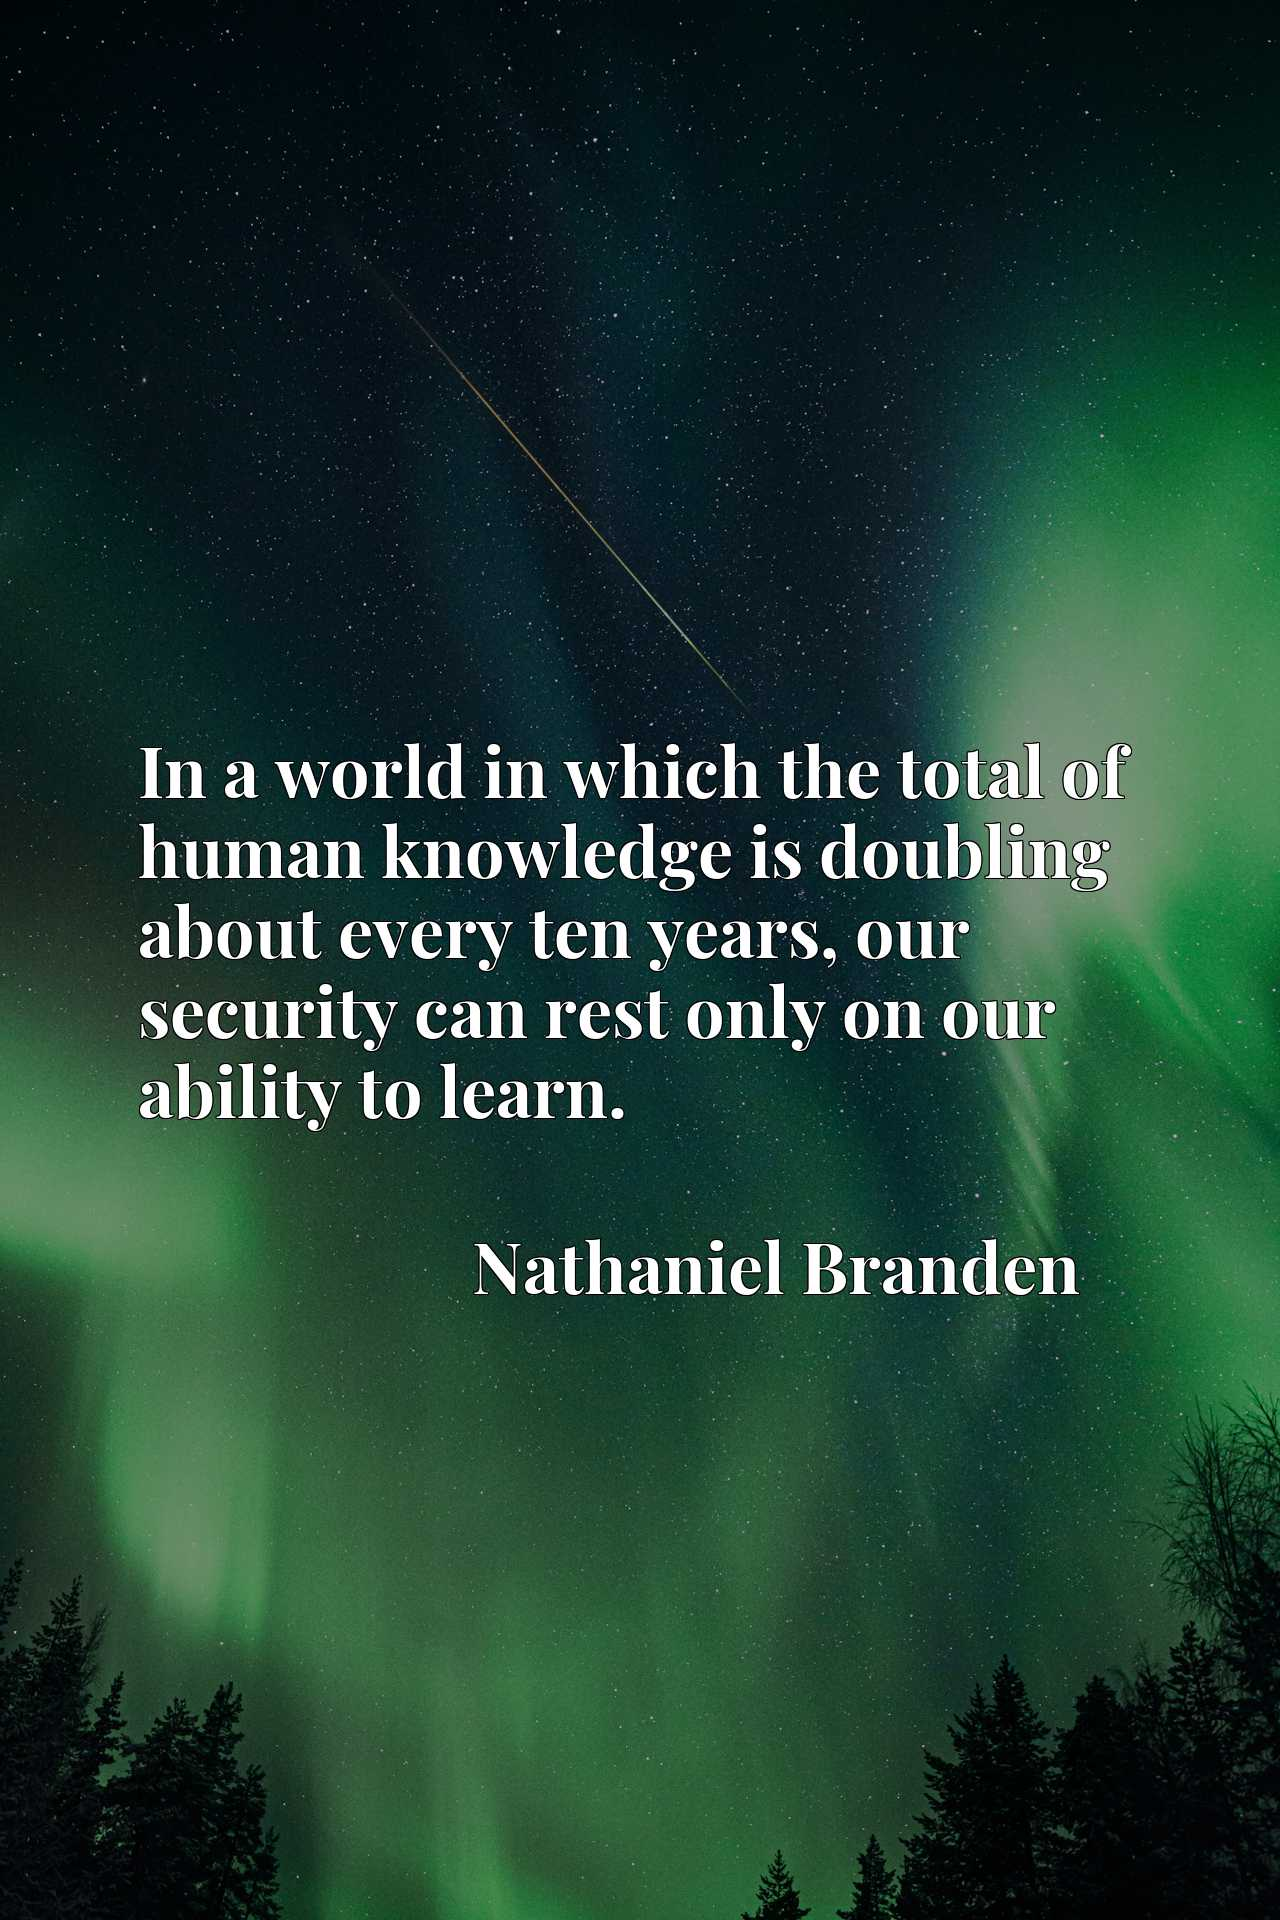 Quote Picture :In a world in which the total of human knowledge is doubling about every ten years, our security can rest only on our ability to learn.